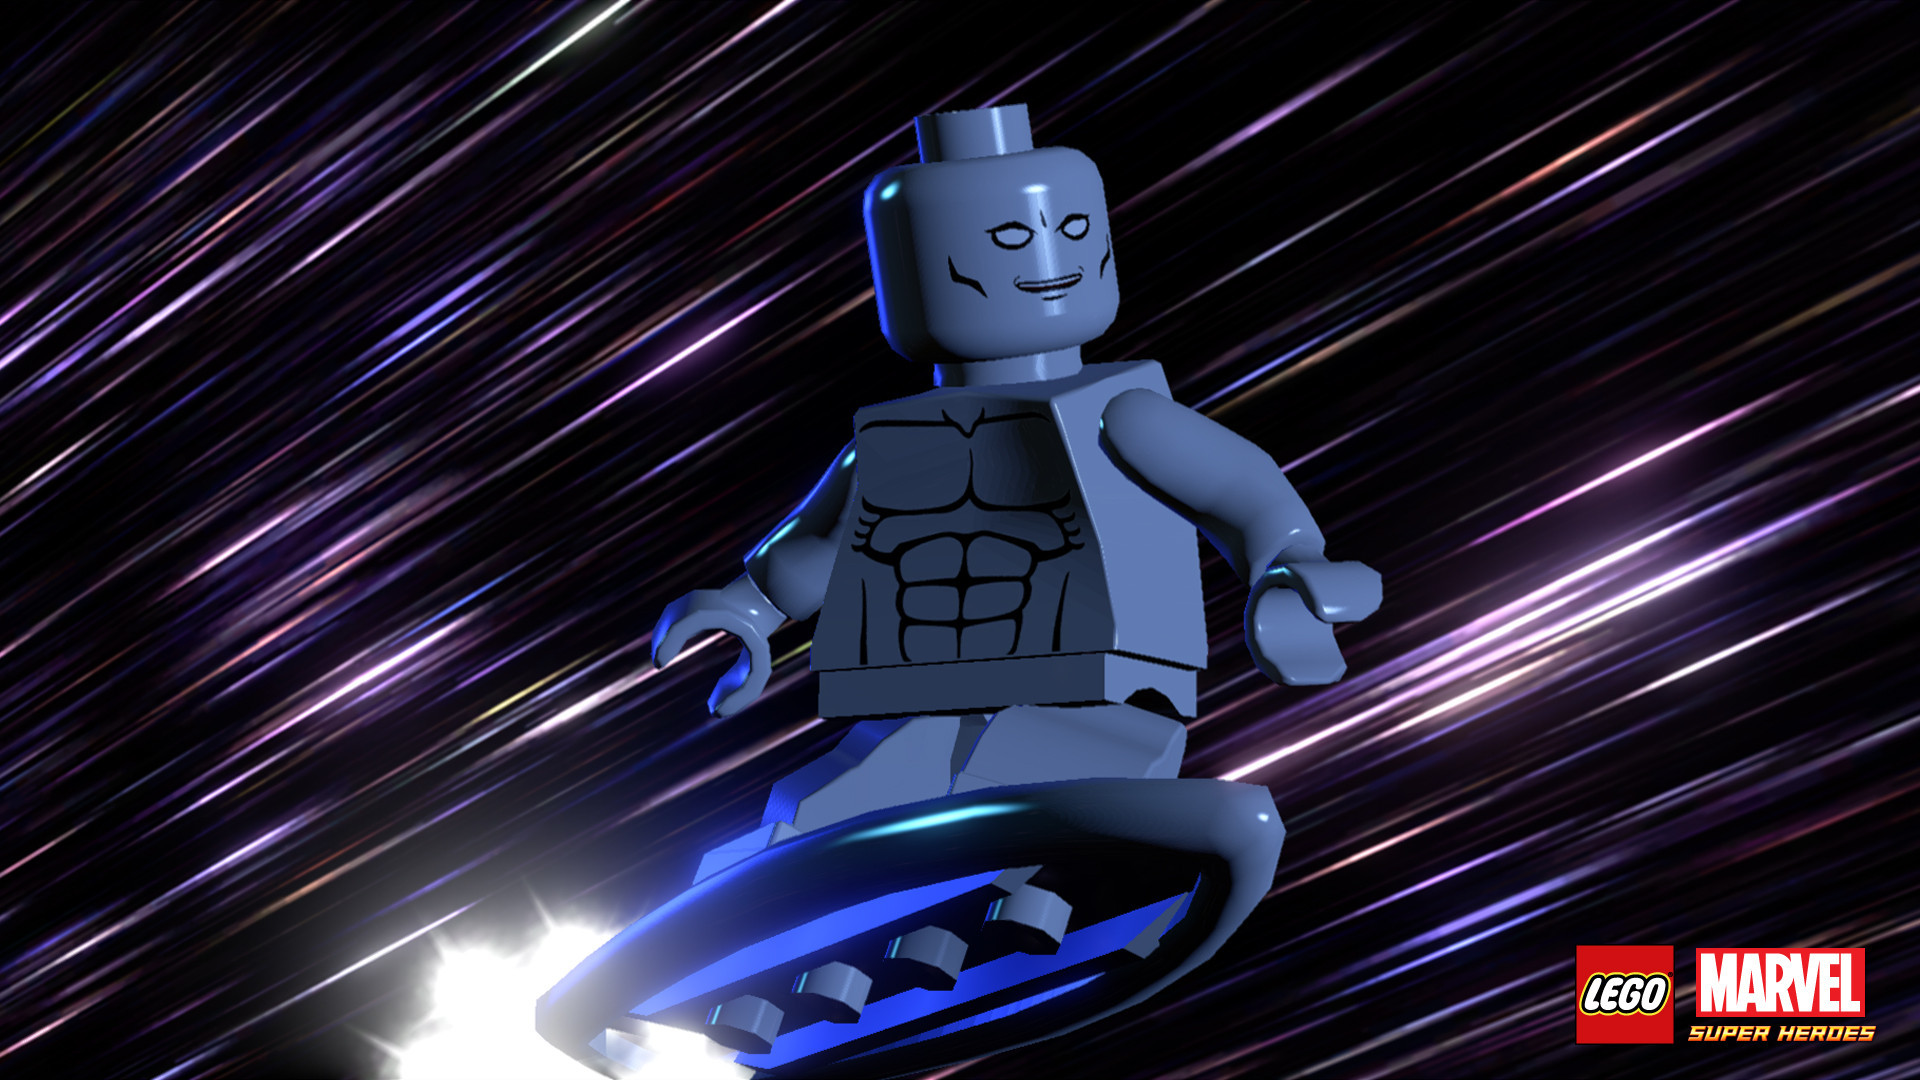 The Silver Surfer as he appears in Lego Marvel Superheroes